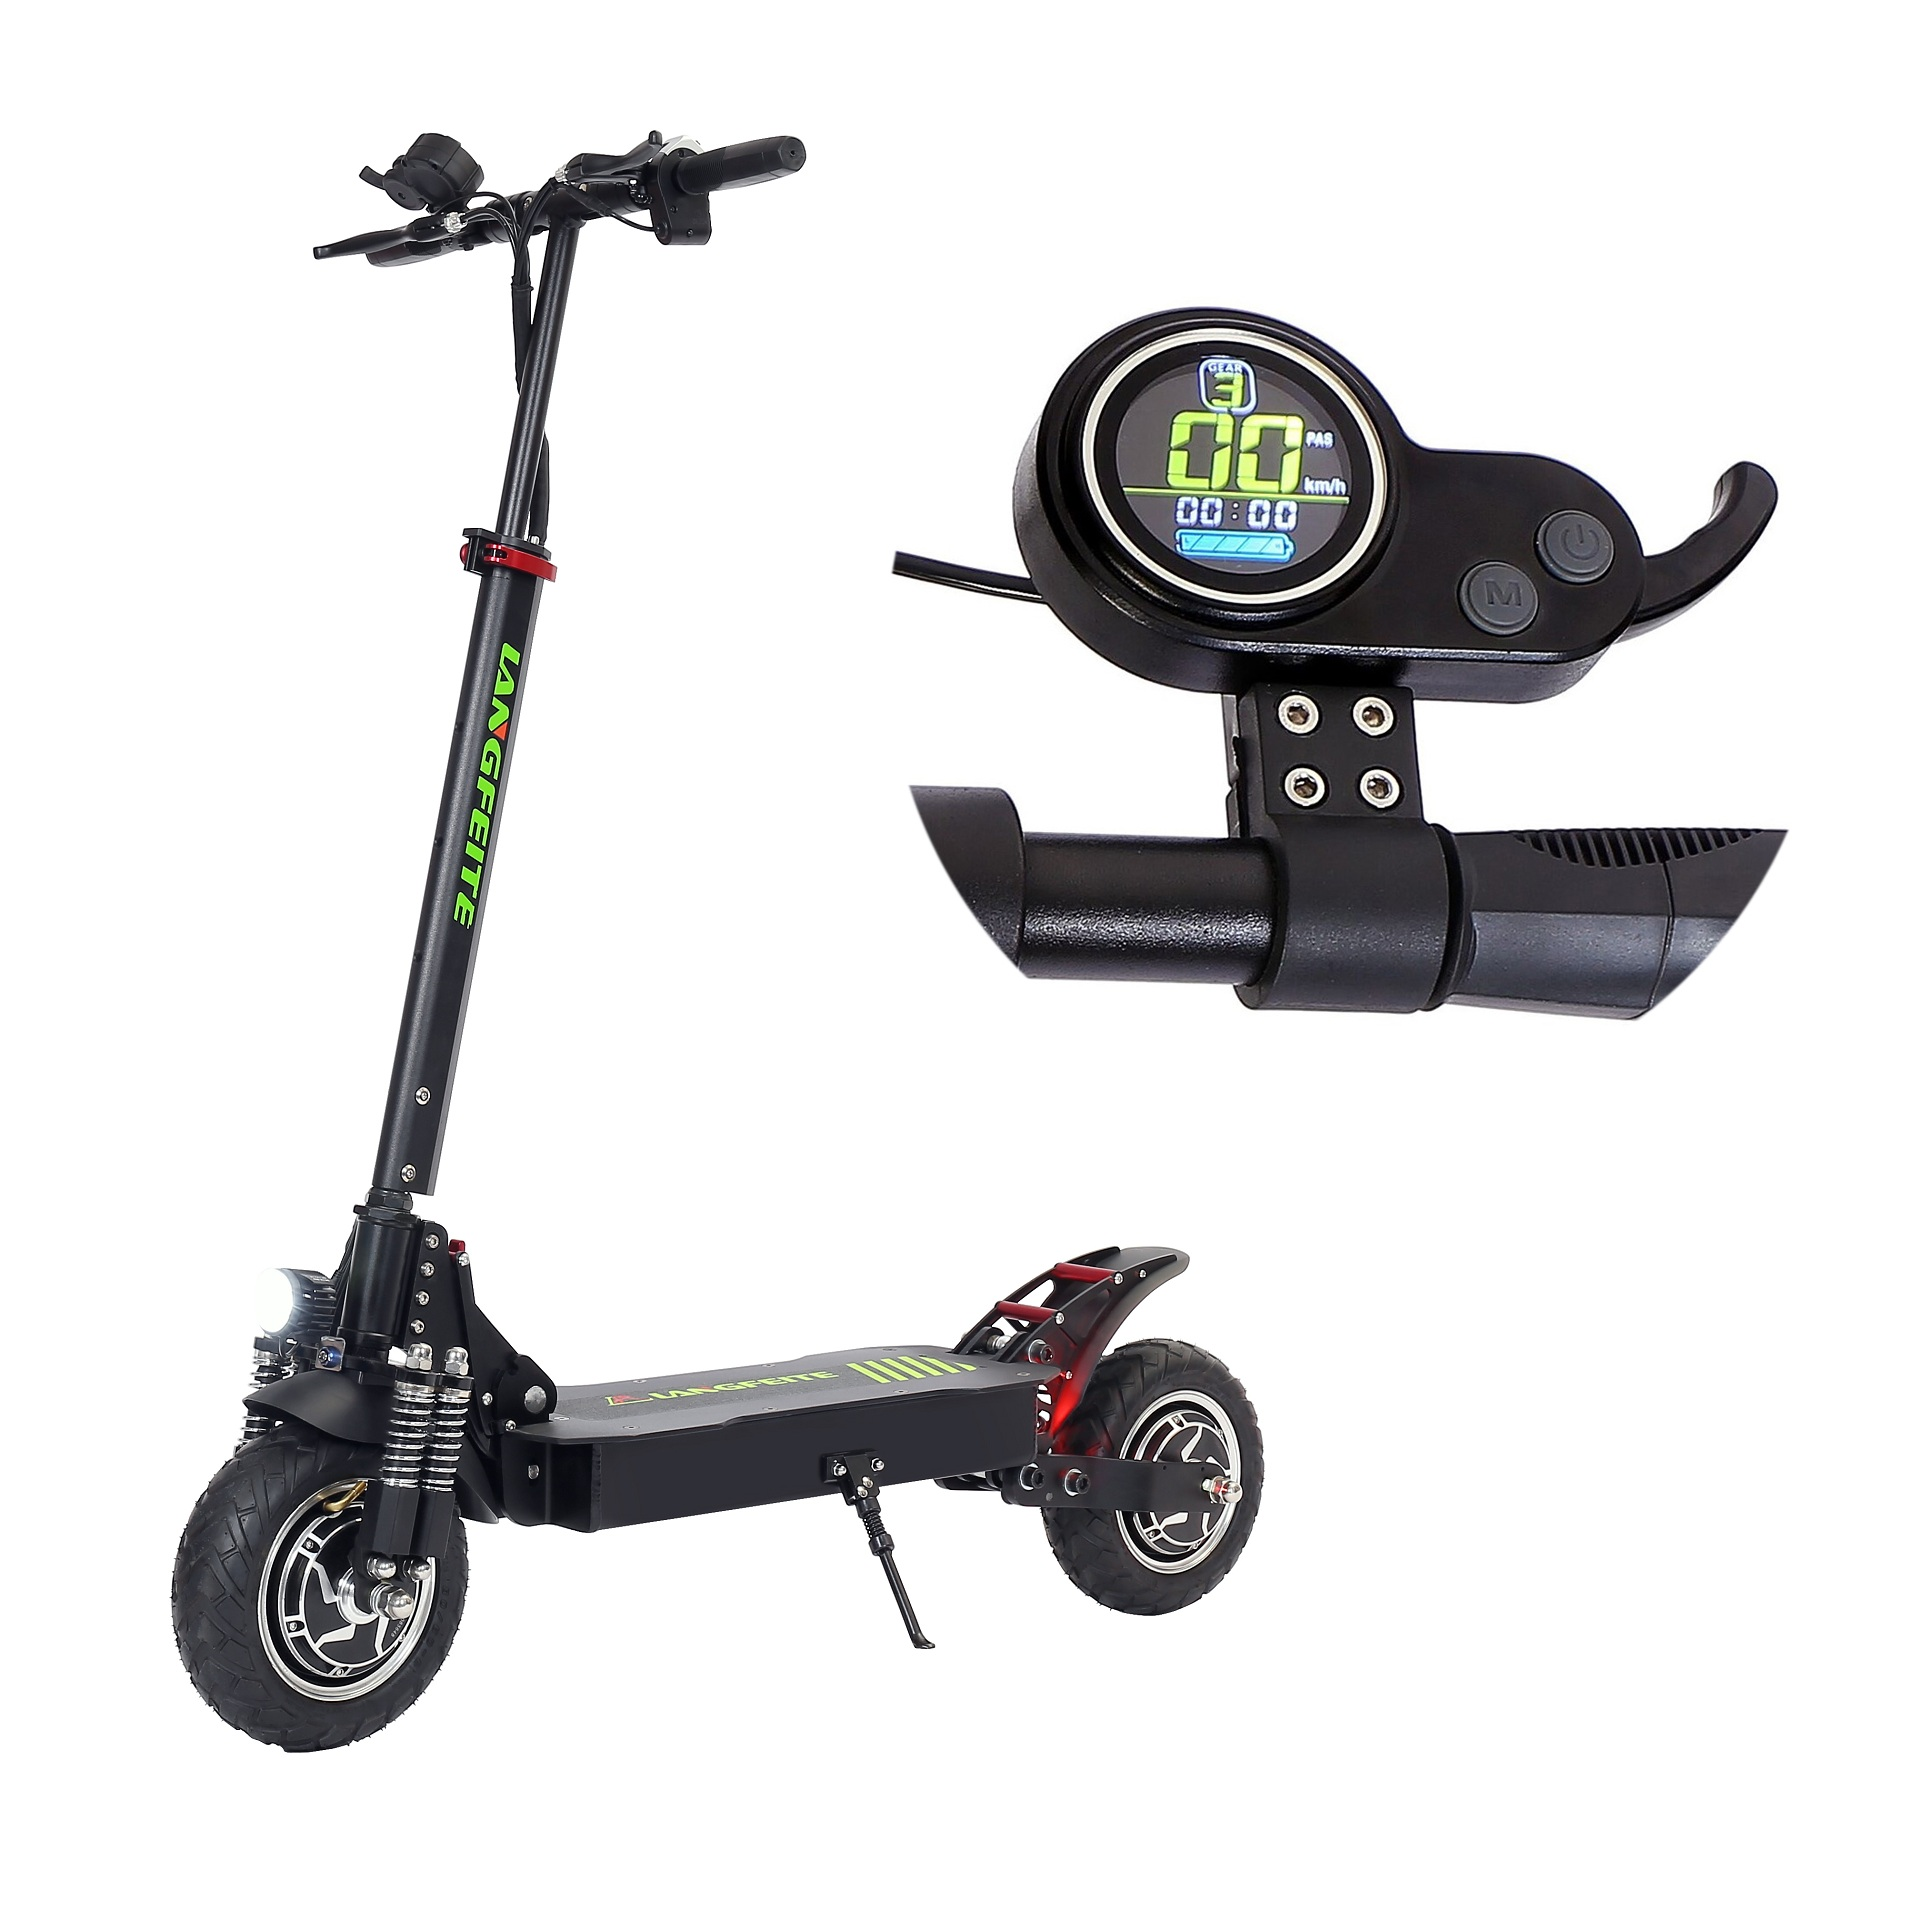 LANGFEITE L8S 2019 Version 15Ah 48V 800W*2 Dual Motor Folding Electric Scooter Color Display DC Brushless Motor 45km/h Top Speed 40km Range EU Plug